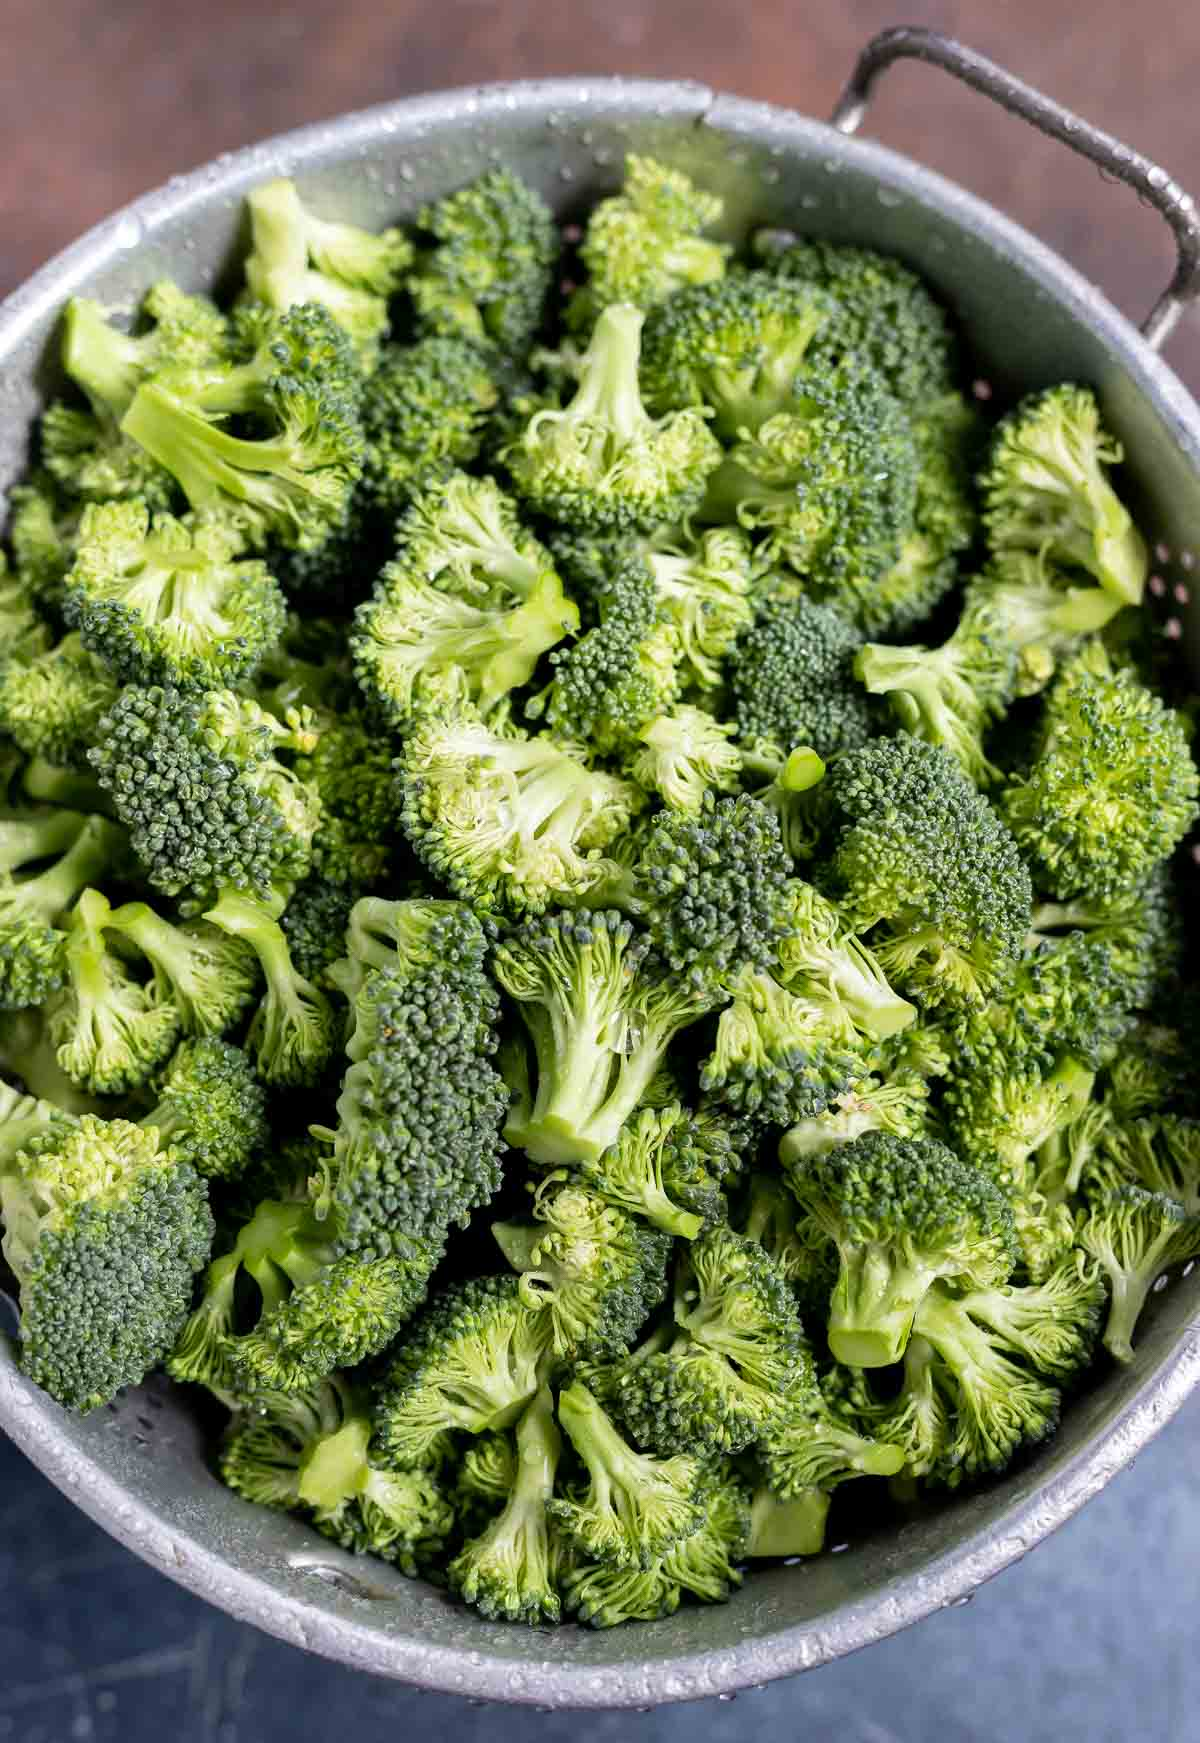 Low Carb Ground Beef And Broccoli Tasty Low Carb Recipes